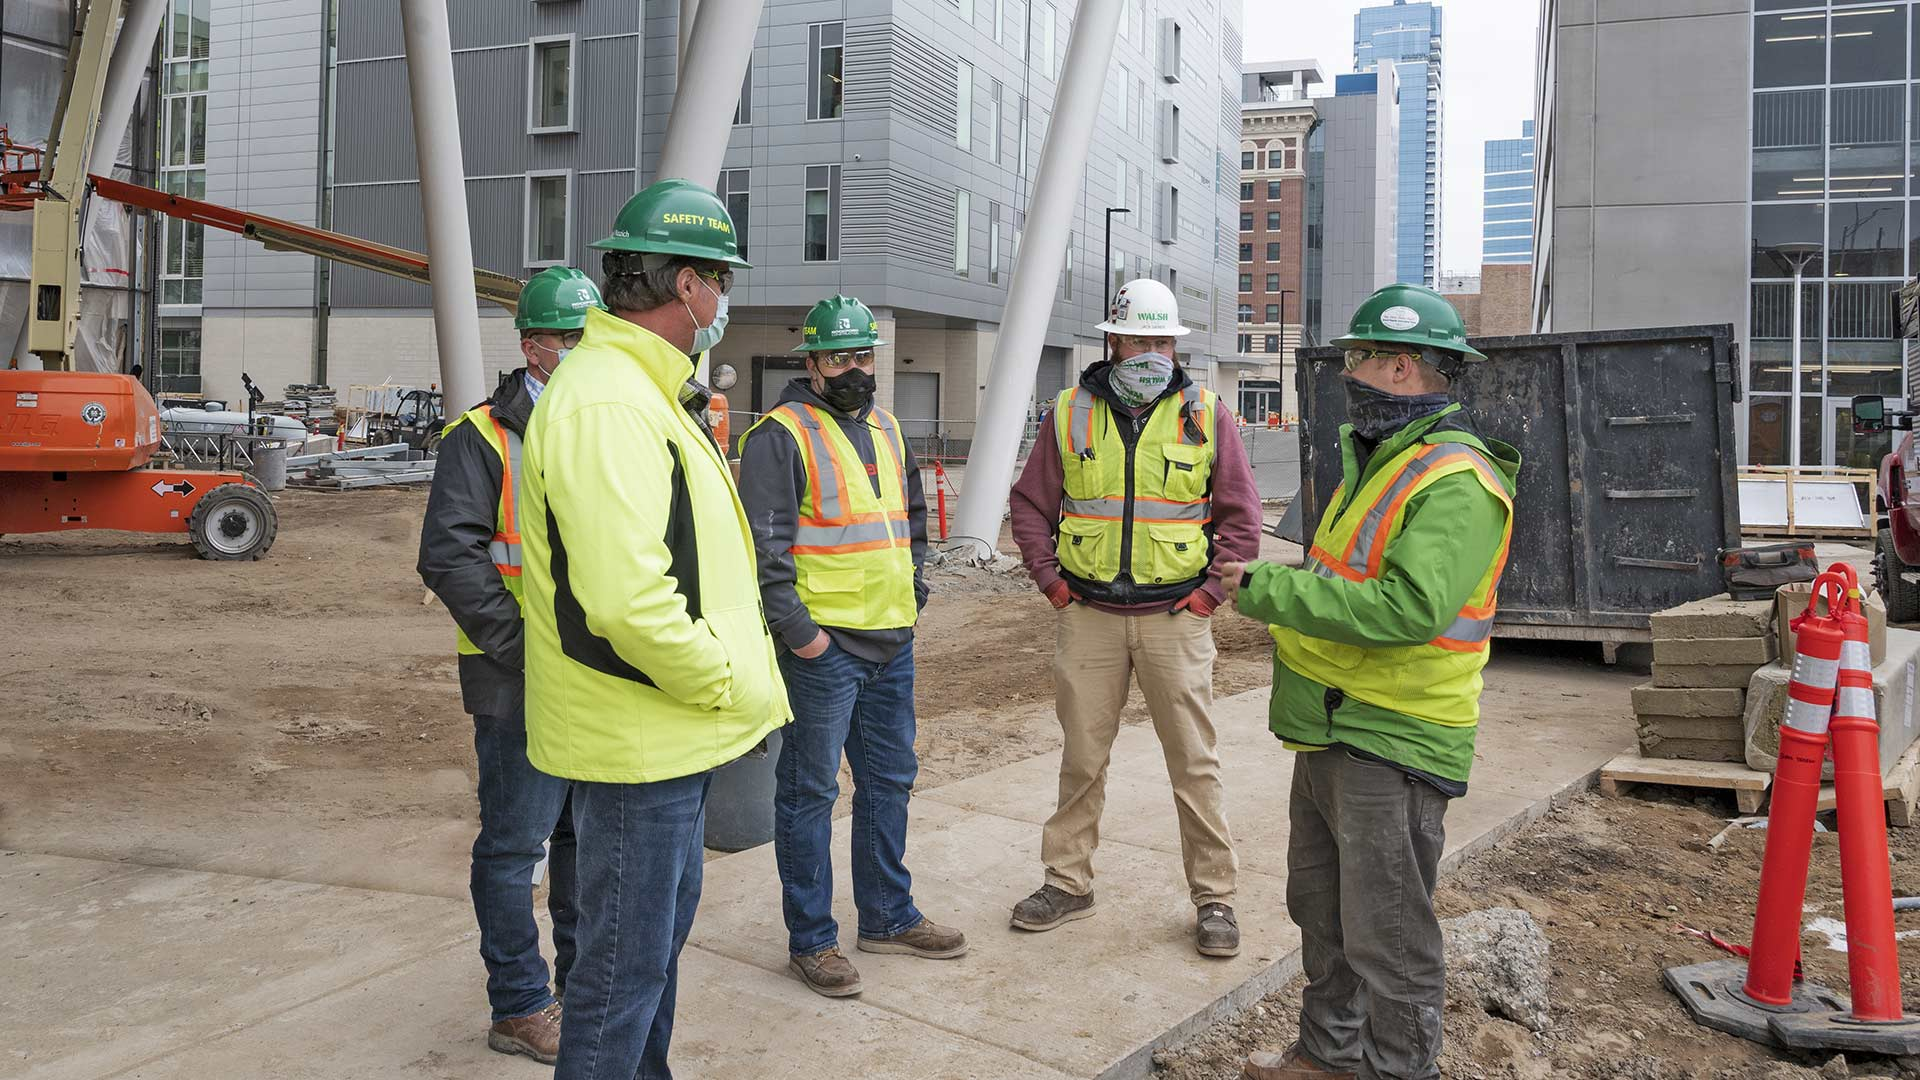 The Rockford Safety team meets to discuss safe operations at a job site.